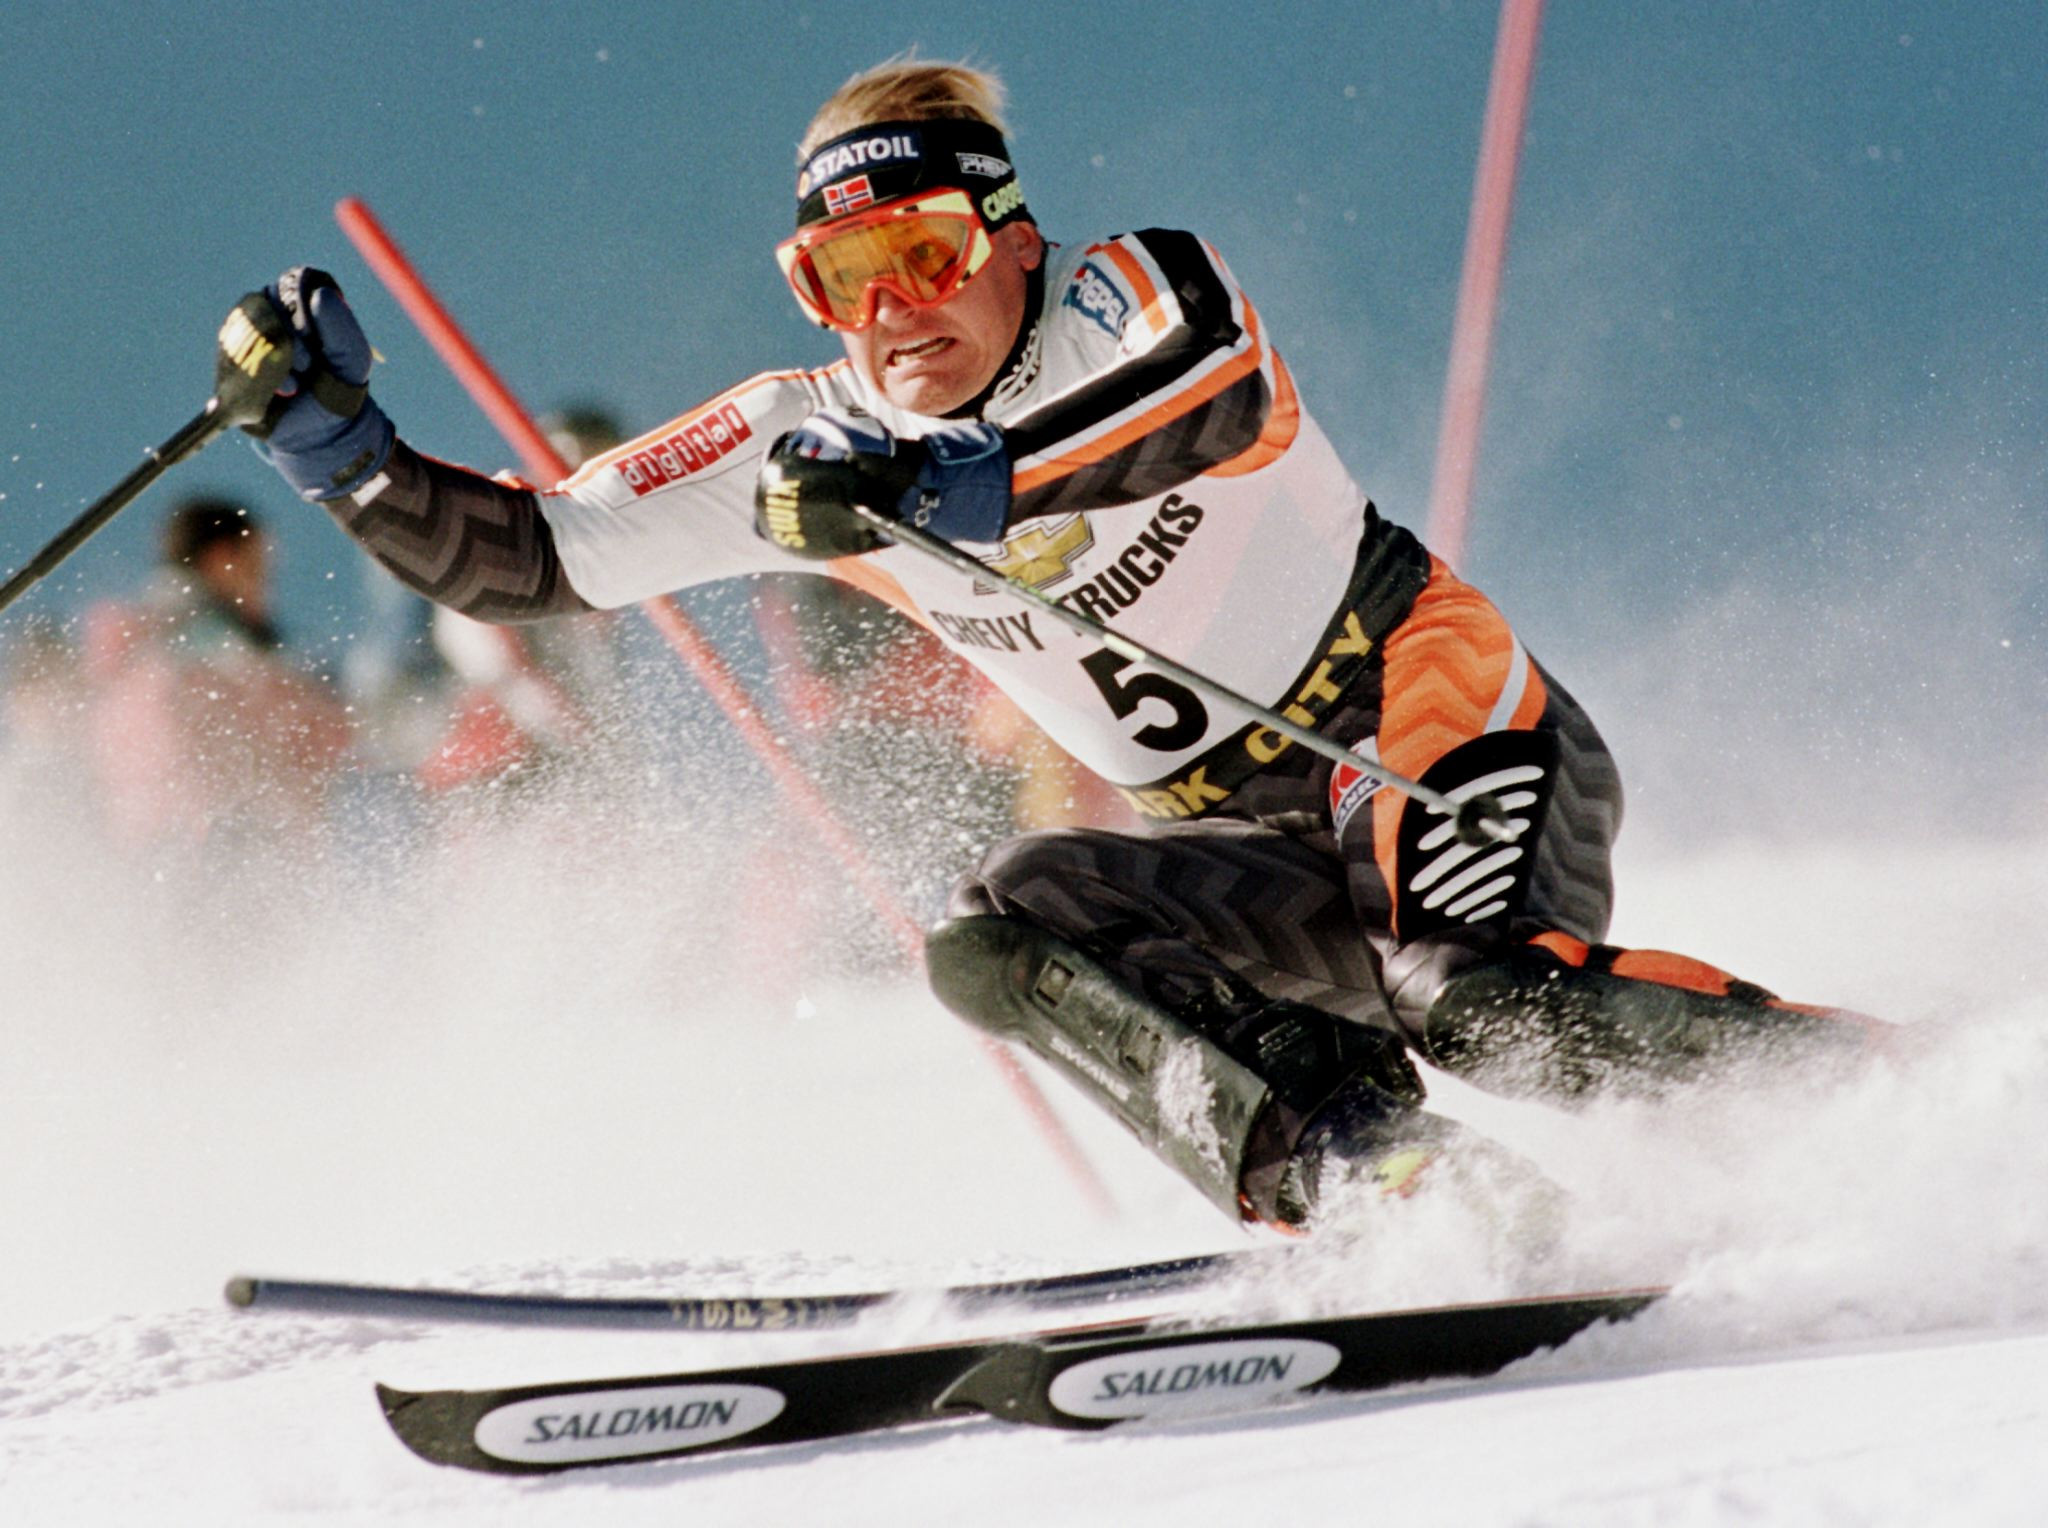 Albertville 1992 Olympic slalom champion Jagge dies at 54